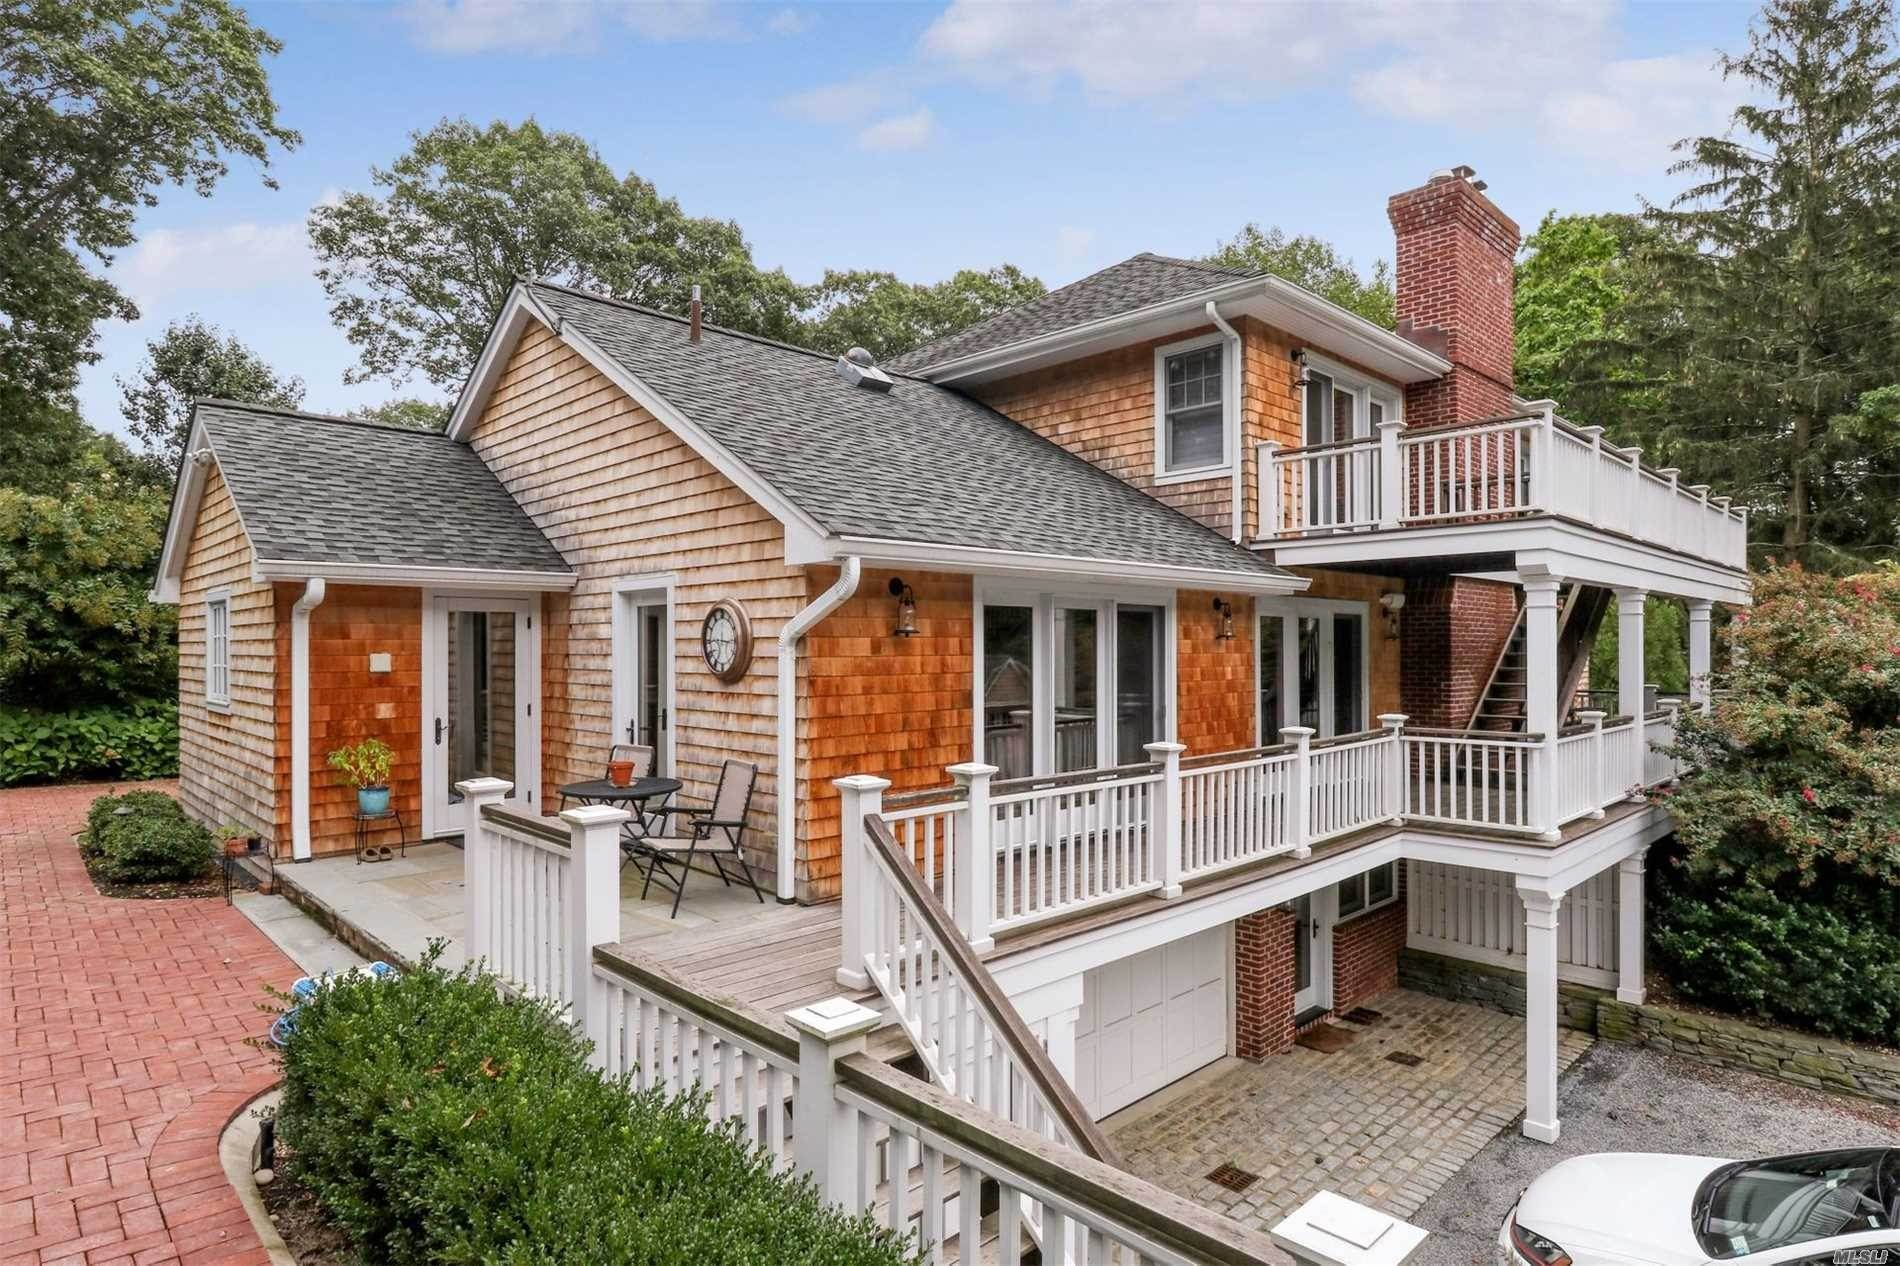 17. Single Family Home のために 売買 アット Huntington,NY,United States Huntington, ニューヨーク,11743 アメリカ